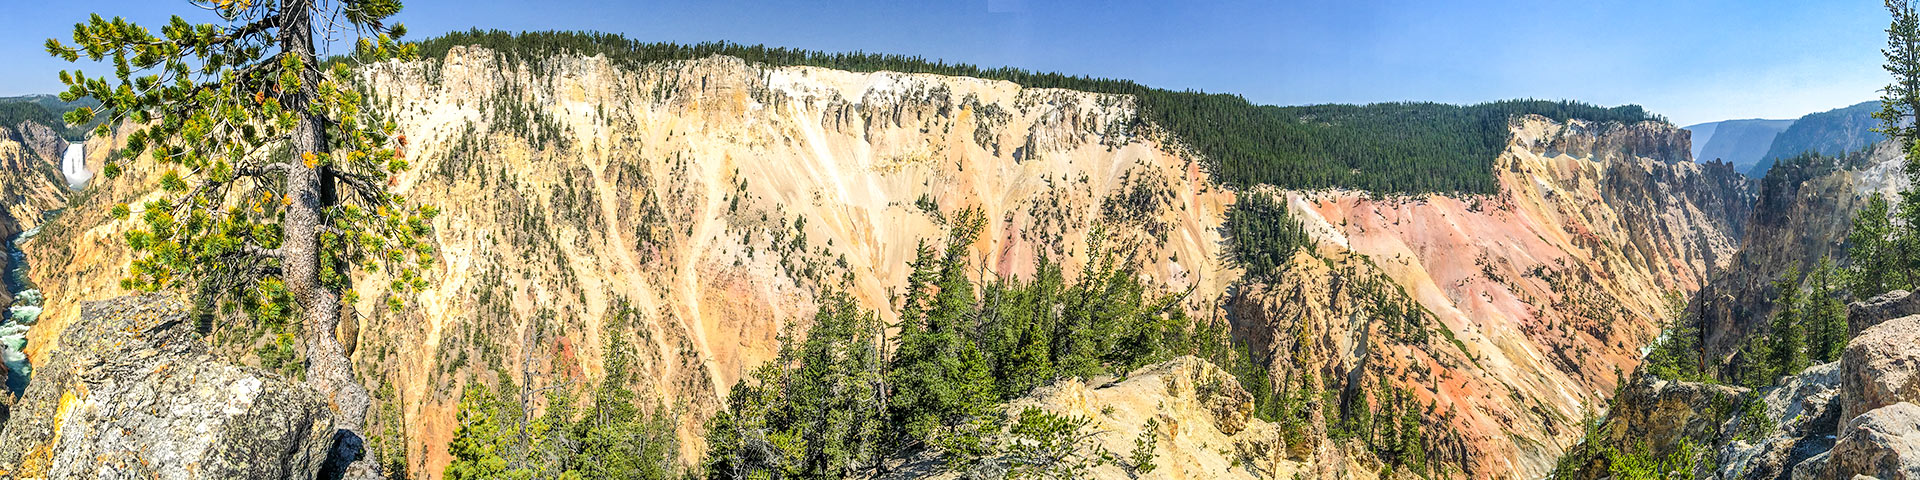 Best hikes in Yellowstone